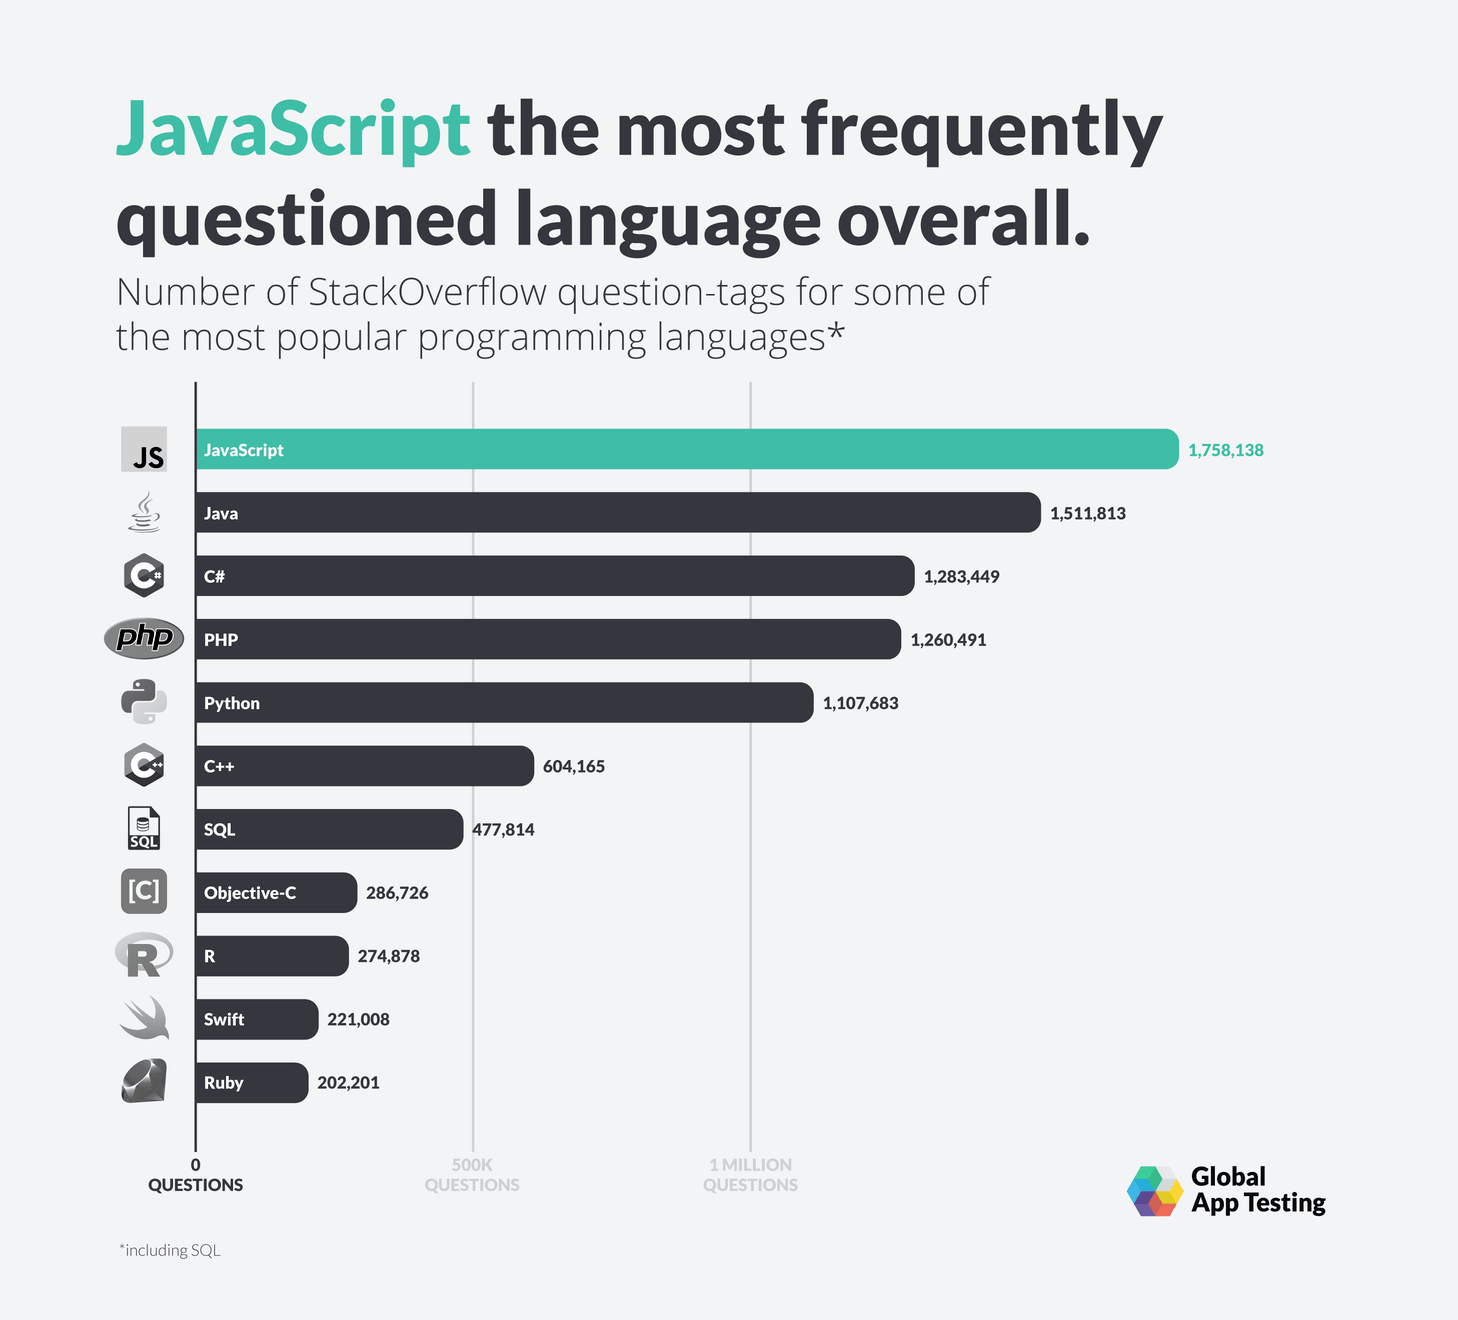 JavaScript is the most frequently questioned language on StackOverflow overall.